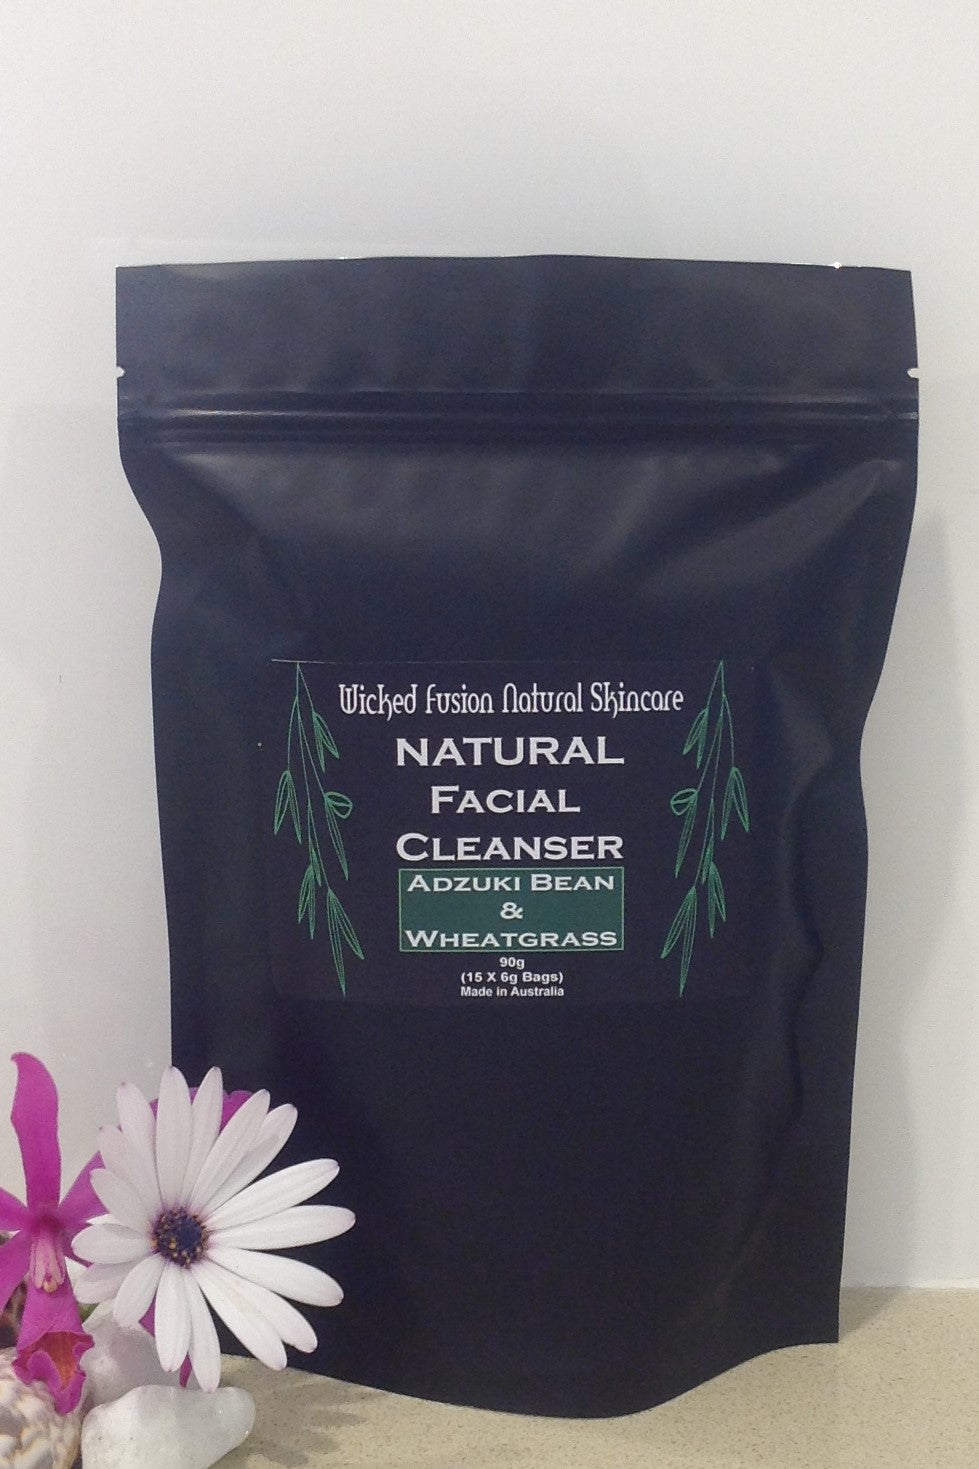 Adzuki Bean & Wheatgrass Facial Cleanser